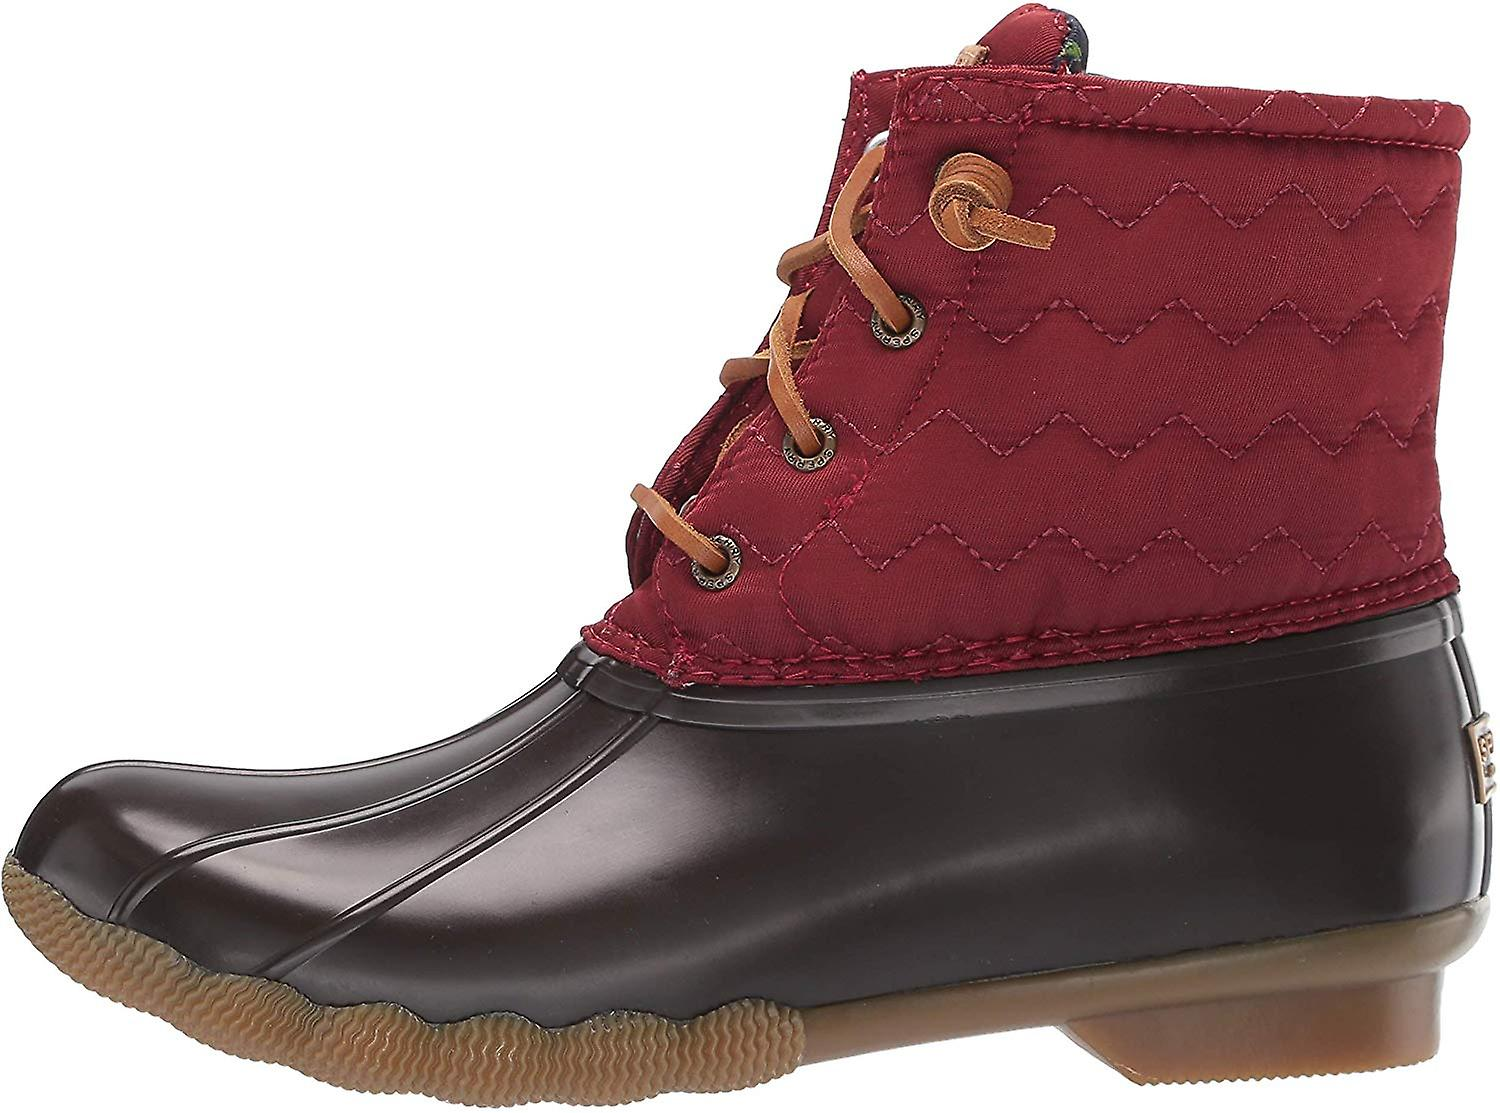 Sperry Womens Saltwater Quilt Closed Toe Ankle Riding Boots ldjyV